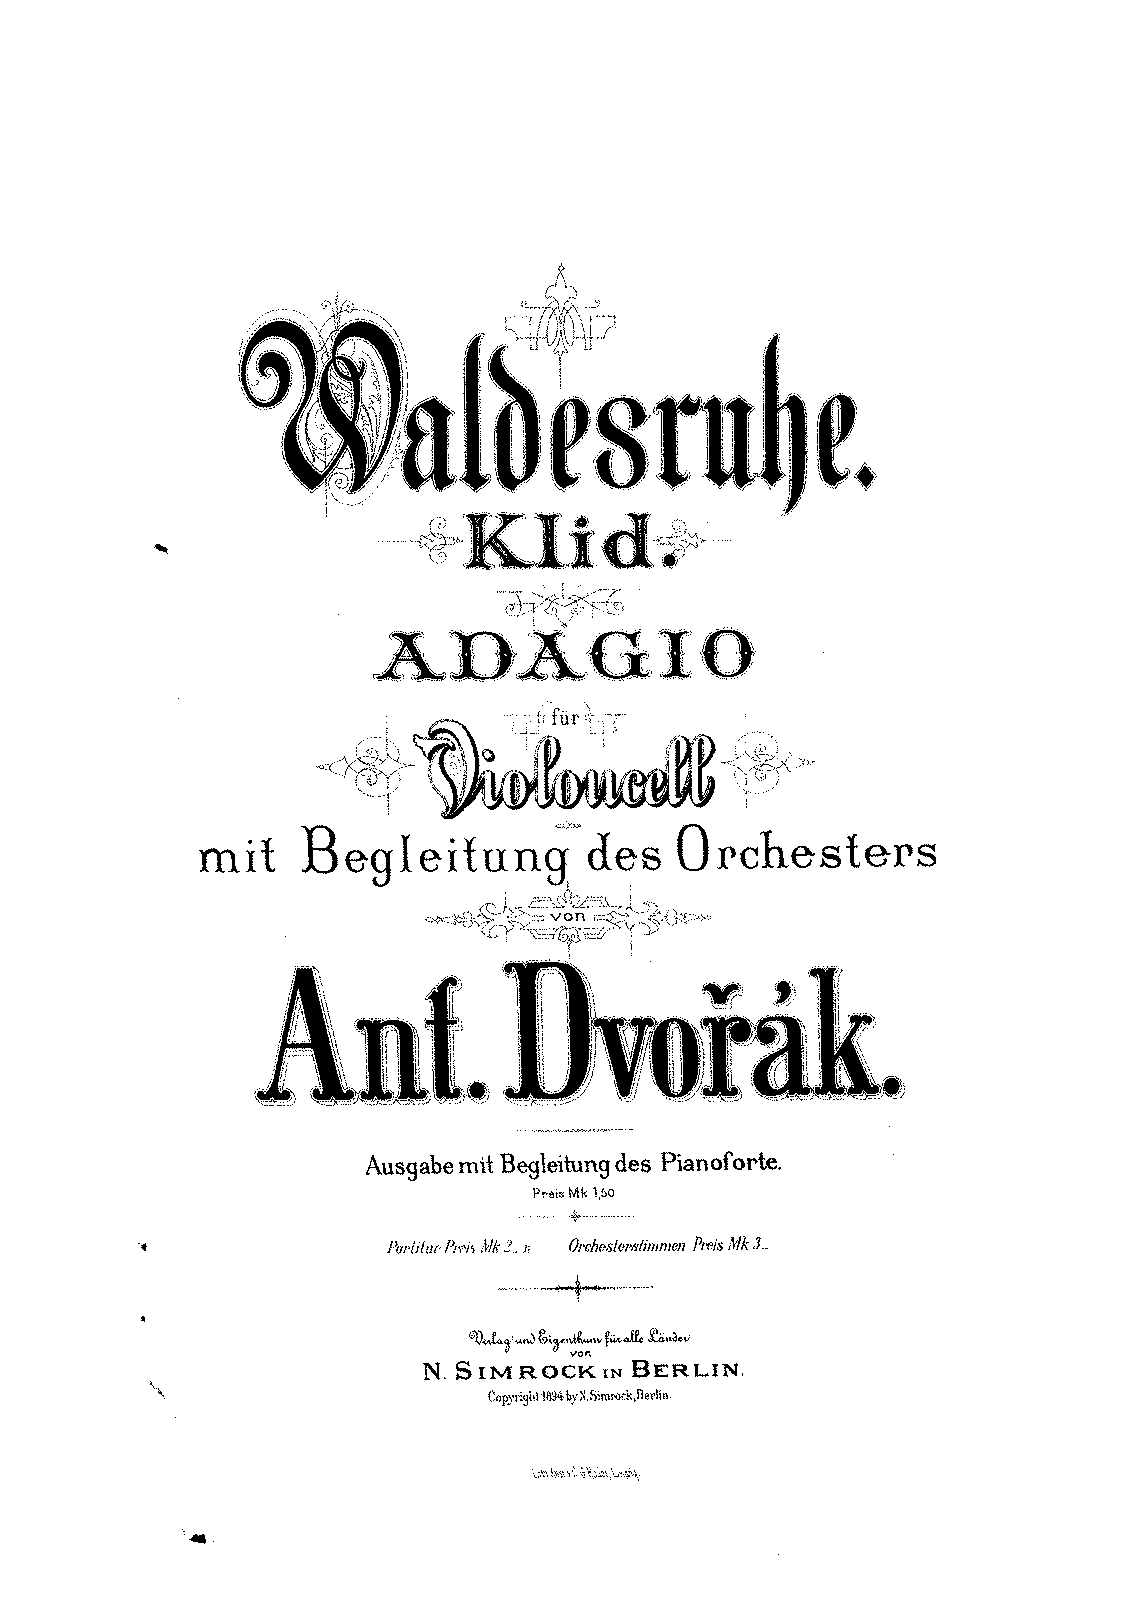 PMLP29707-Dvorak - Waldesruhe Klid Adagio for Cello and Orchestra (Dvorak) score.pdf